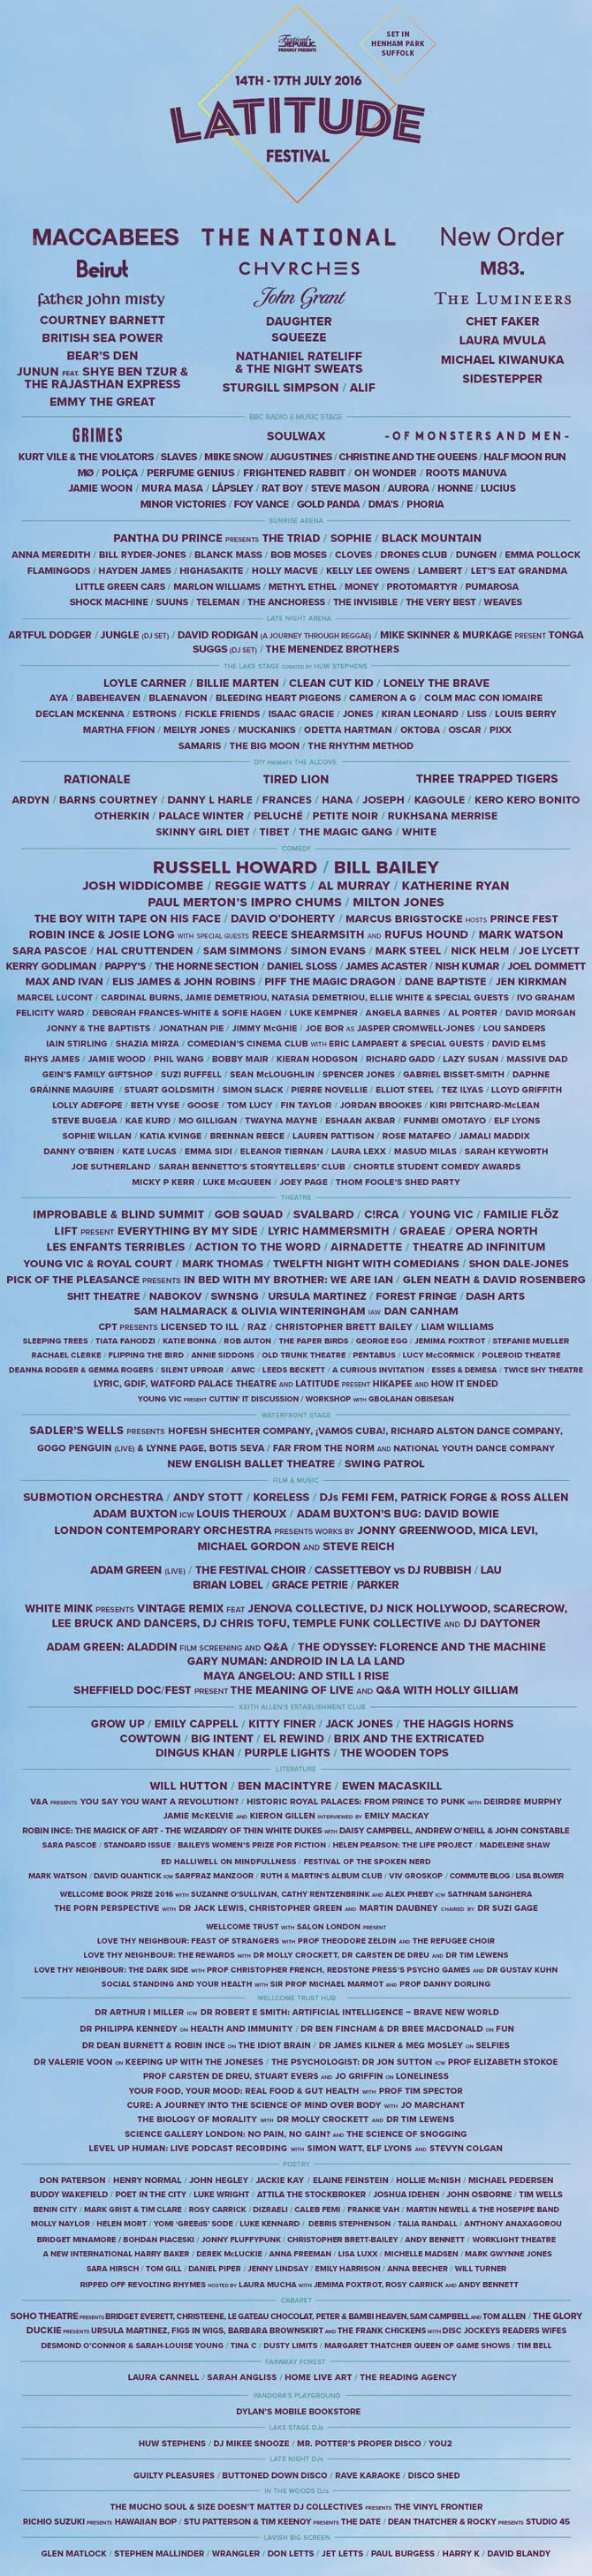 Latitude Festival 2016 Line-up Poster